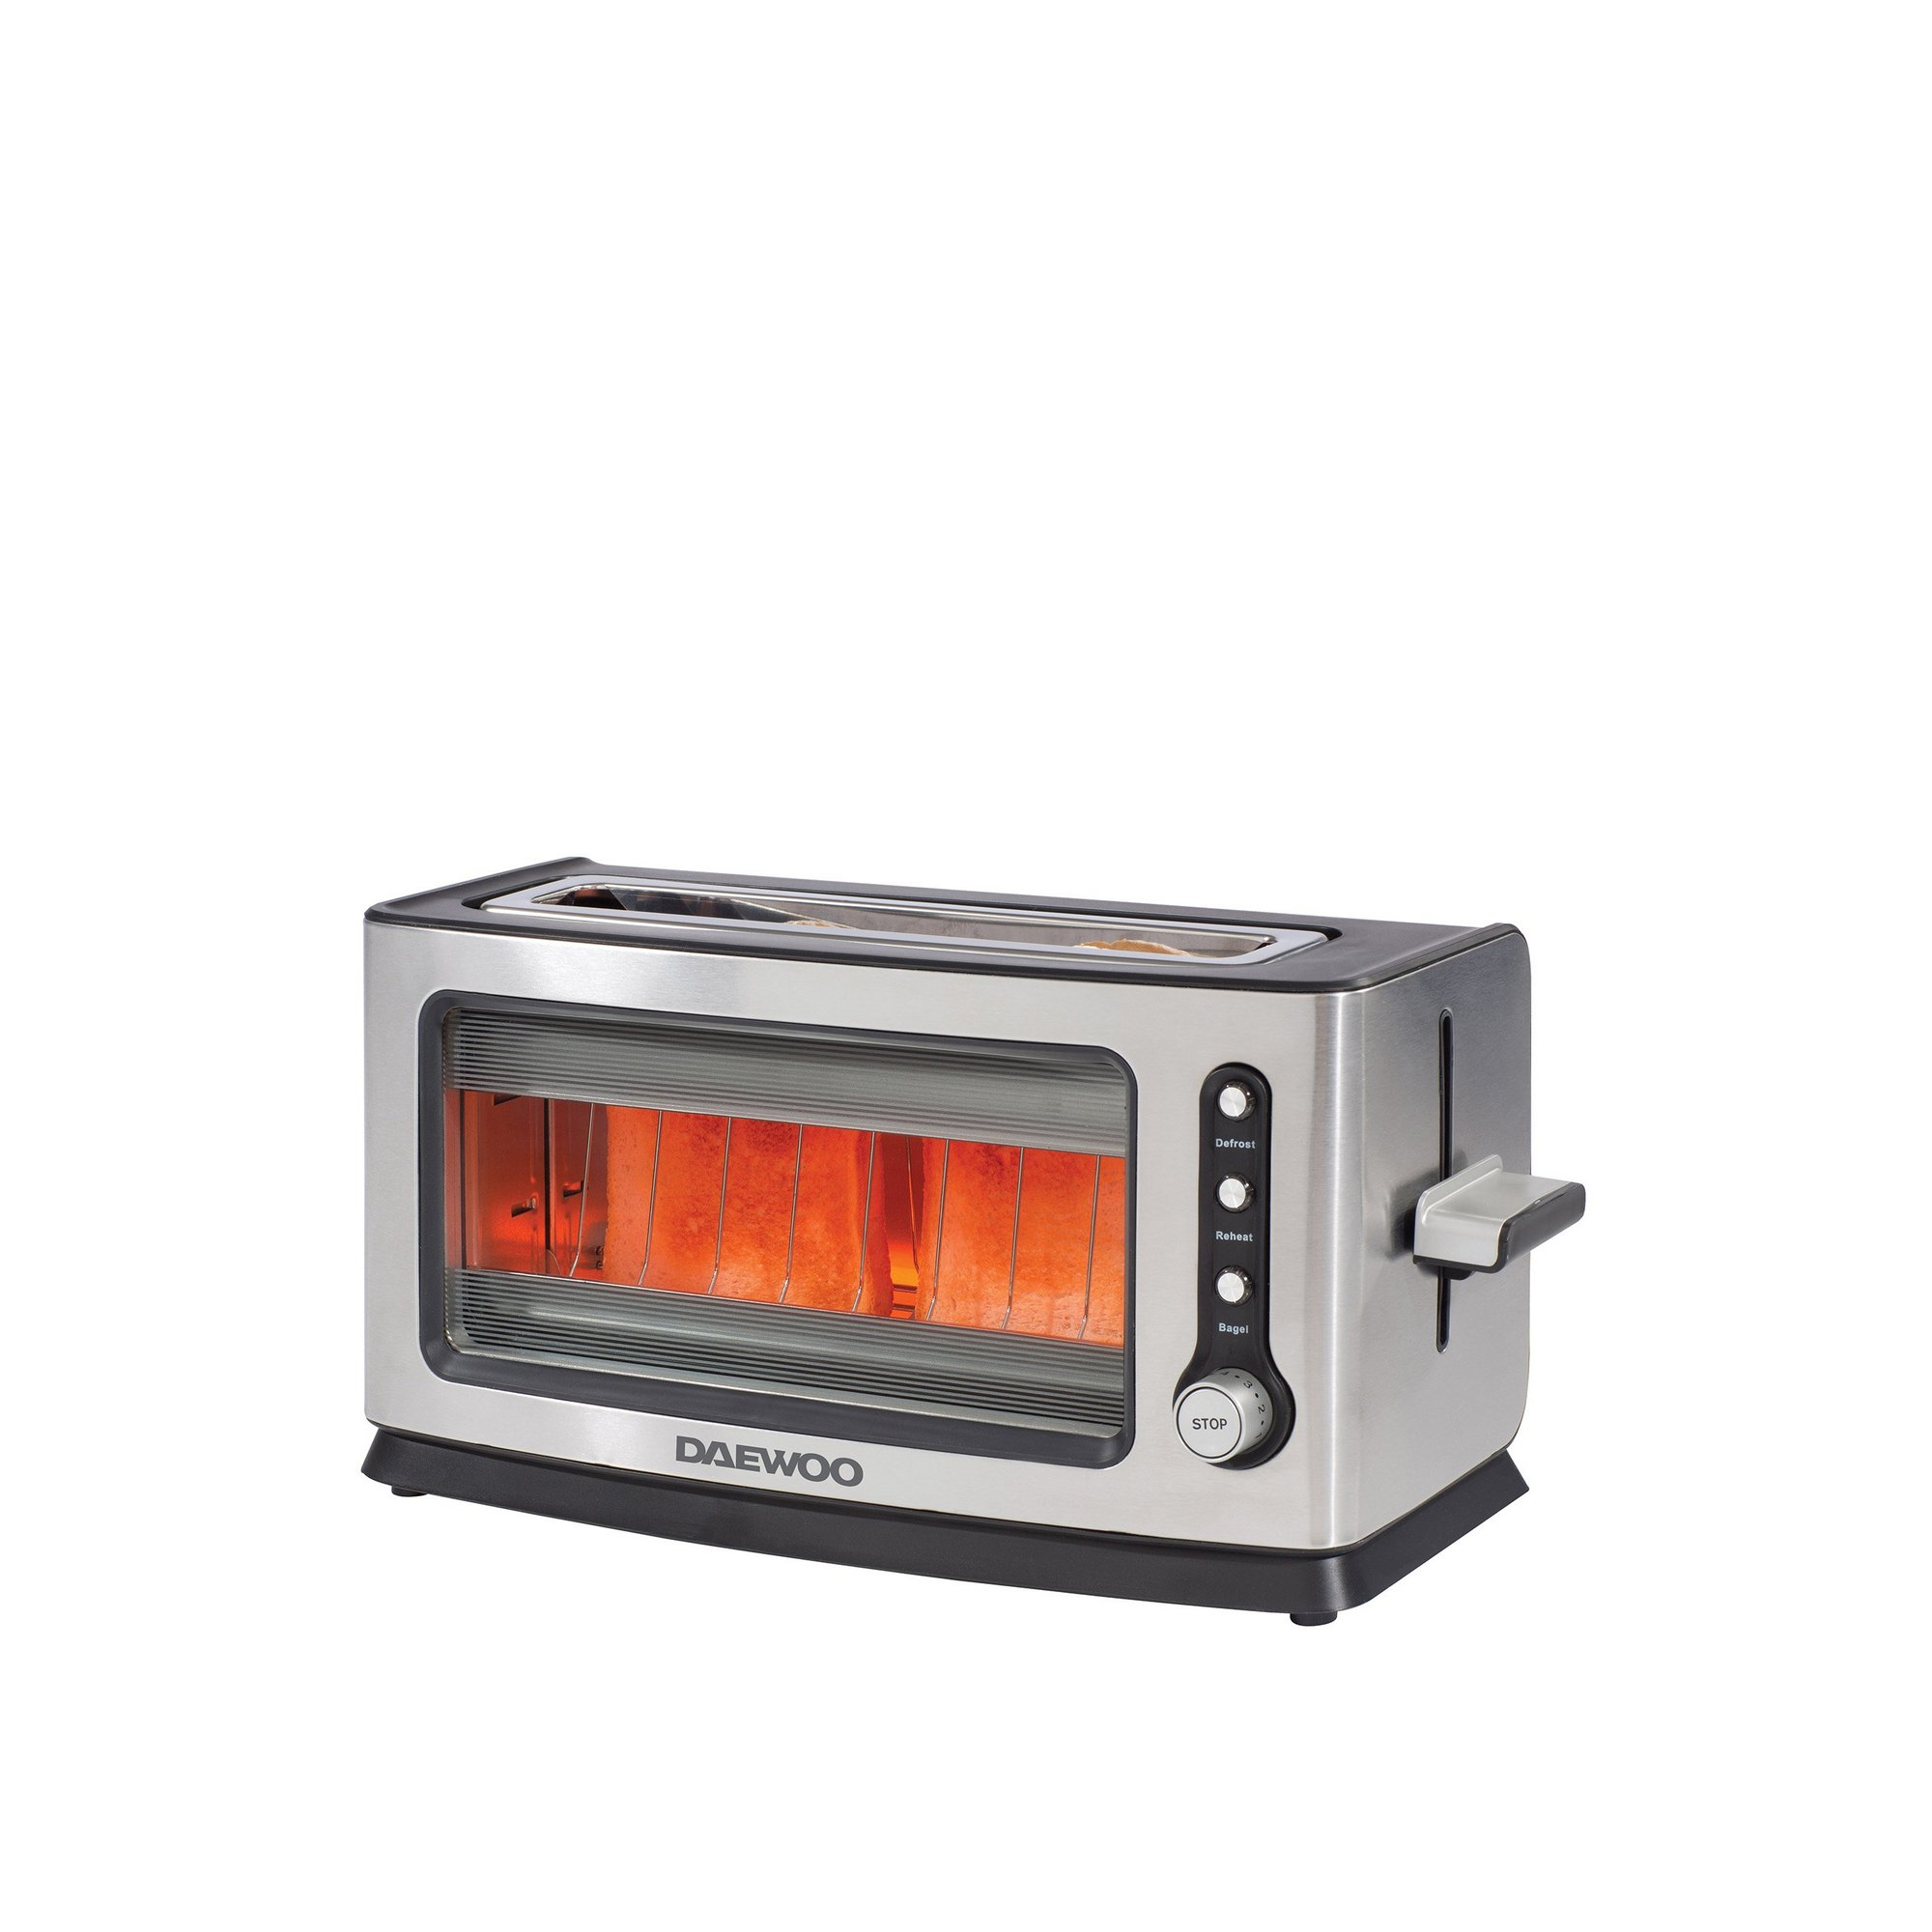 Image of Daewoo 2 Slice Glass Silver Toaster